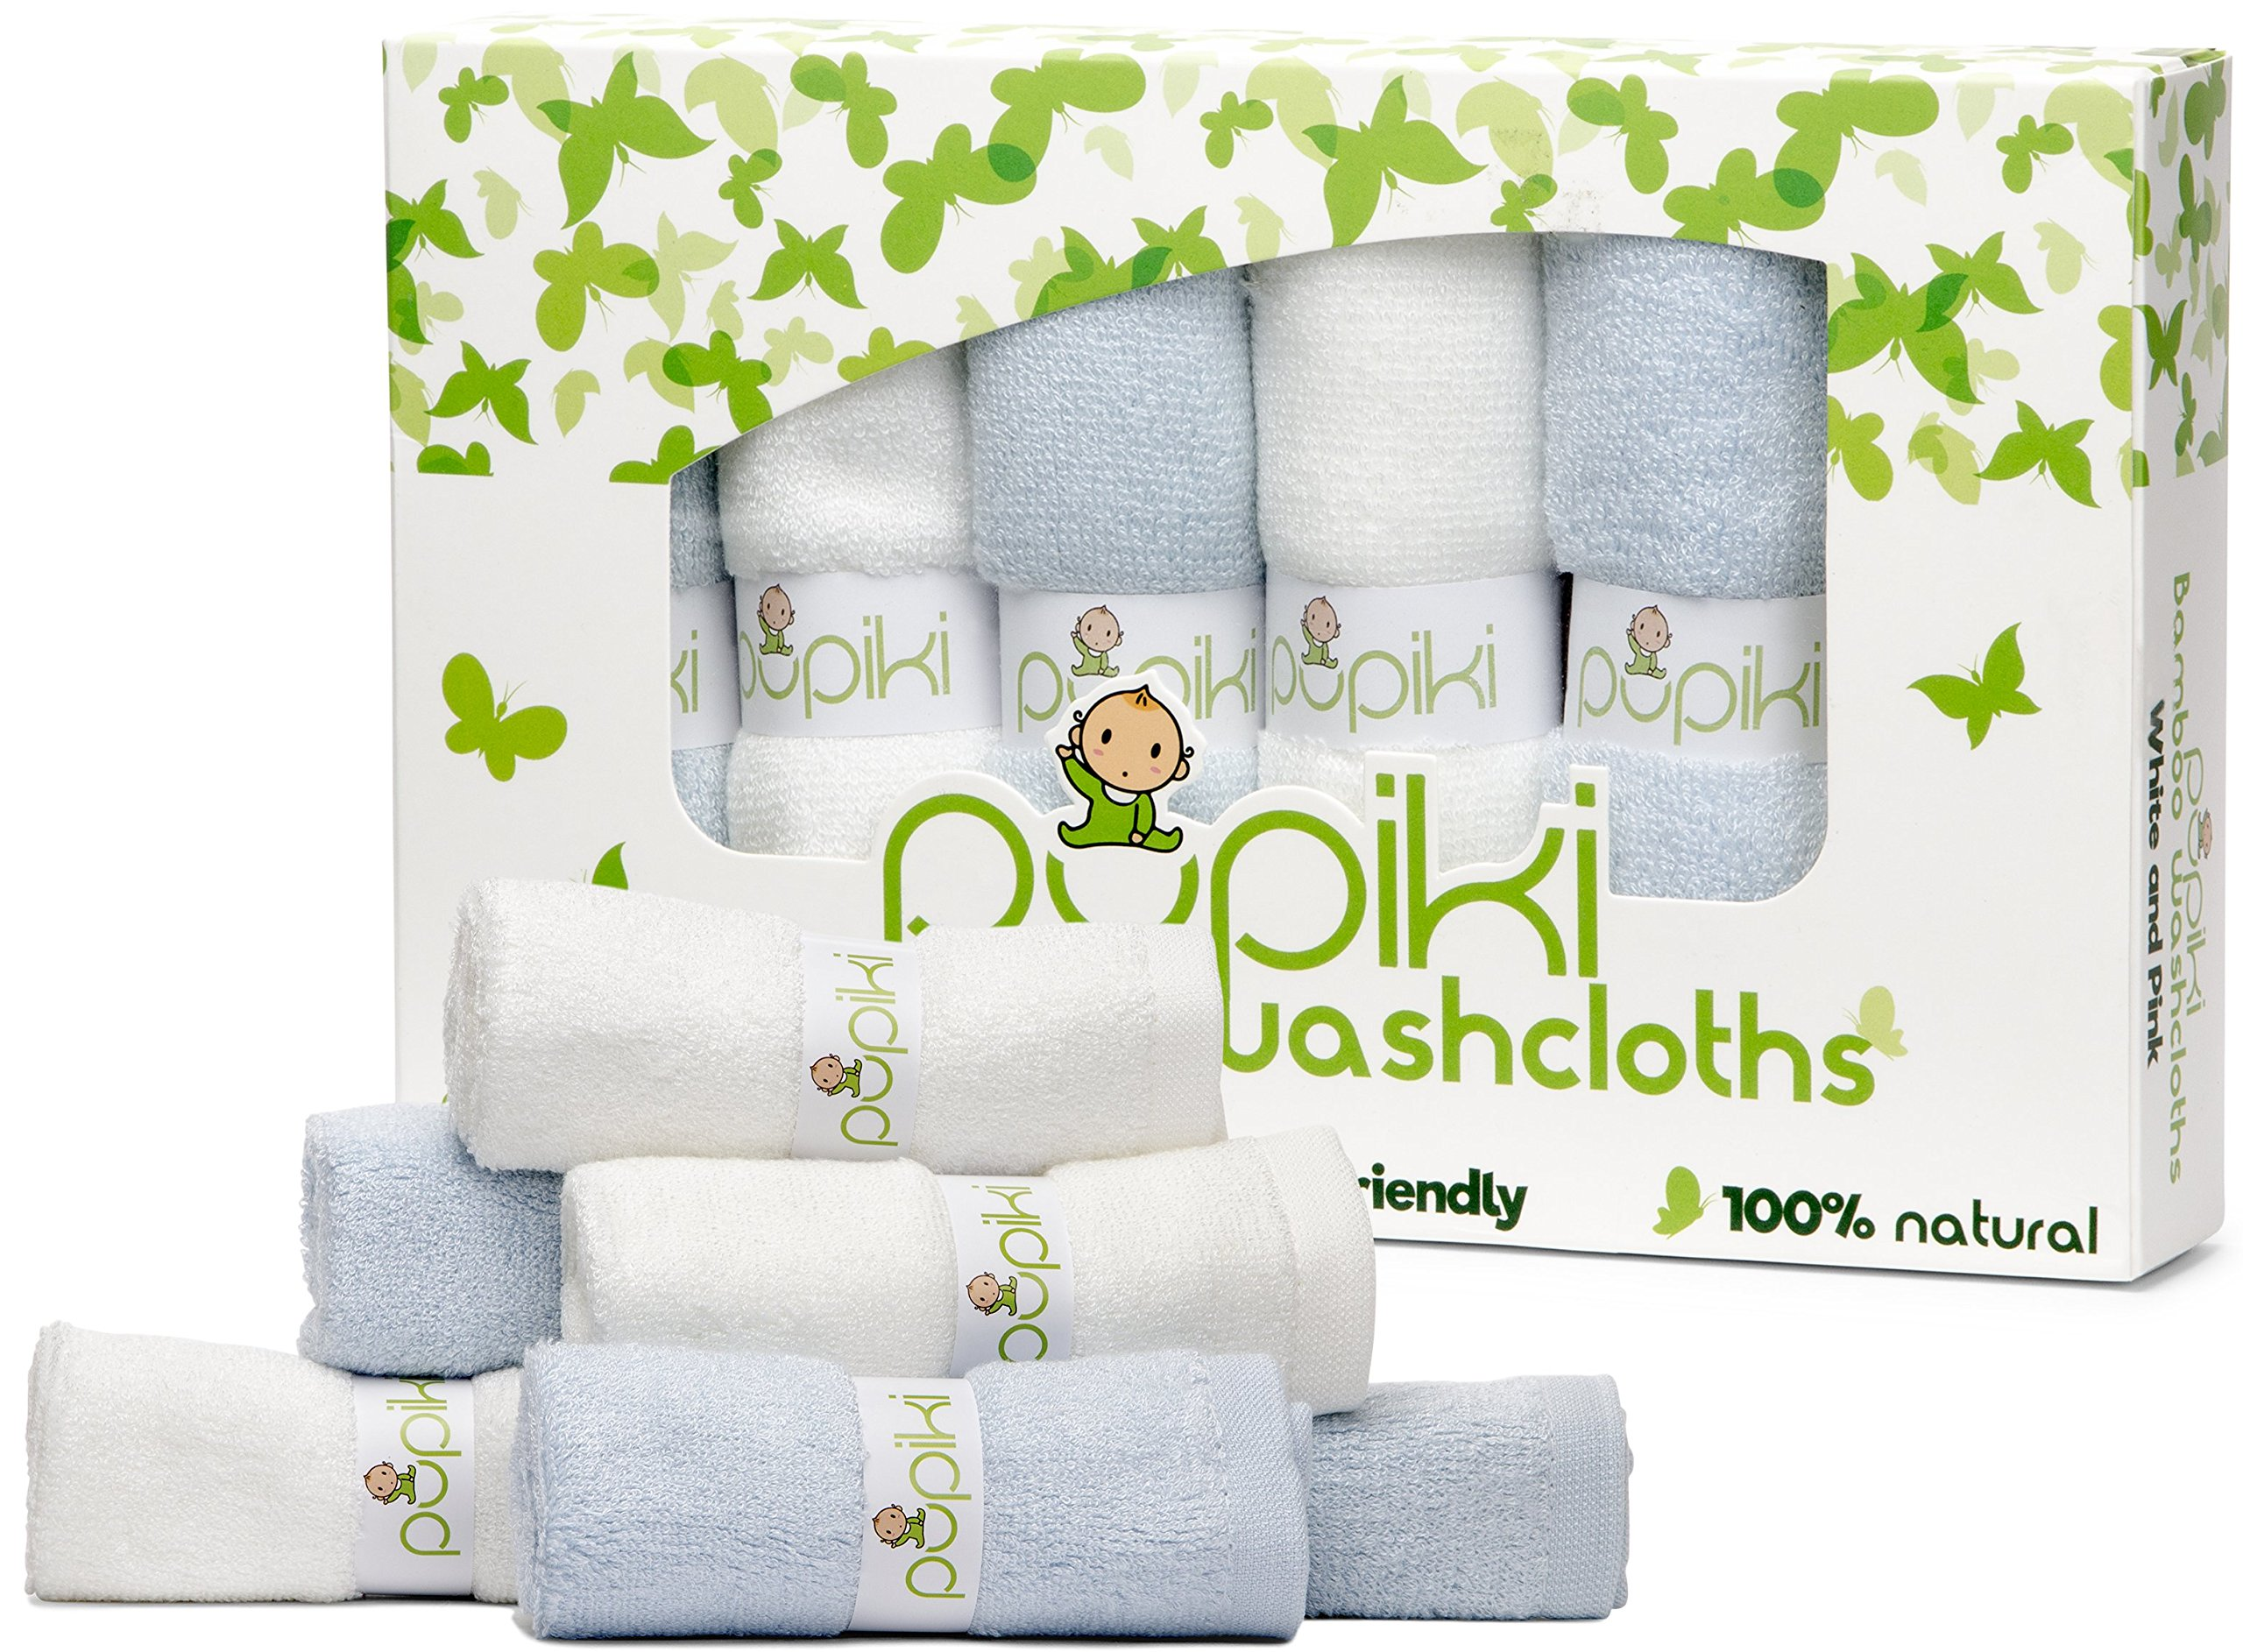 Pupiki Baby Washcloths: 6 Ultra-Soft 100% Organic Bamboo Baby Washcloth Hypoallergenic Face